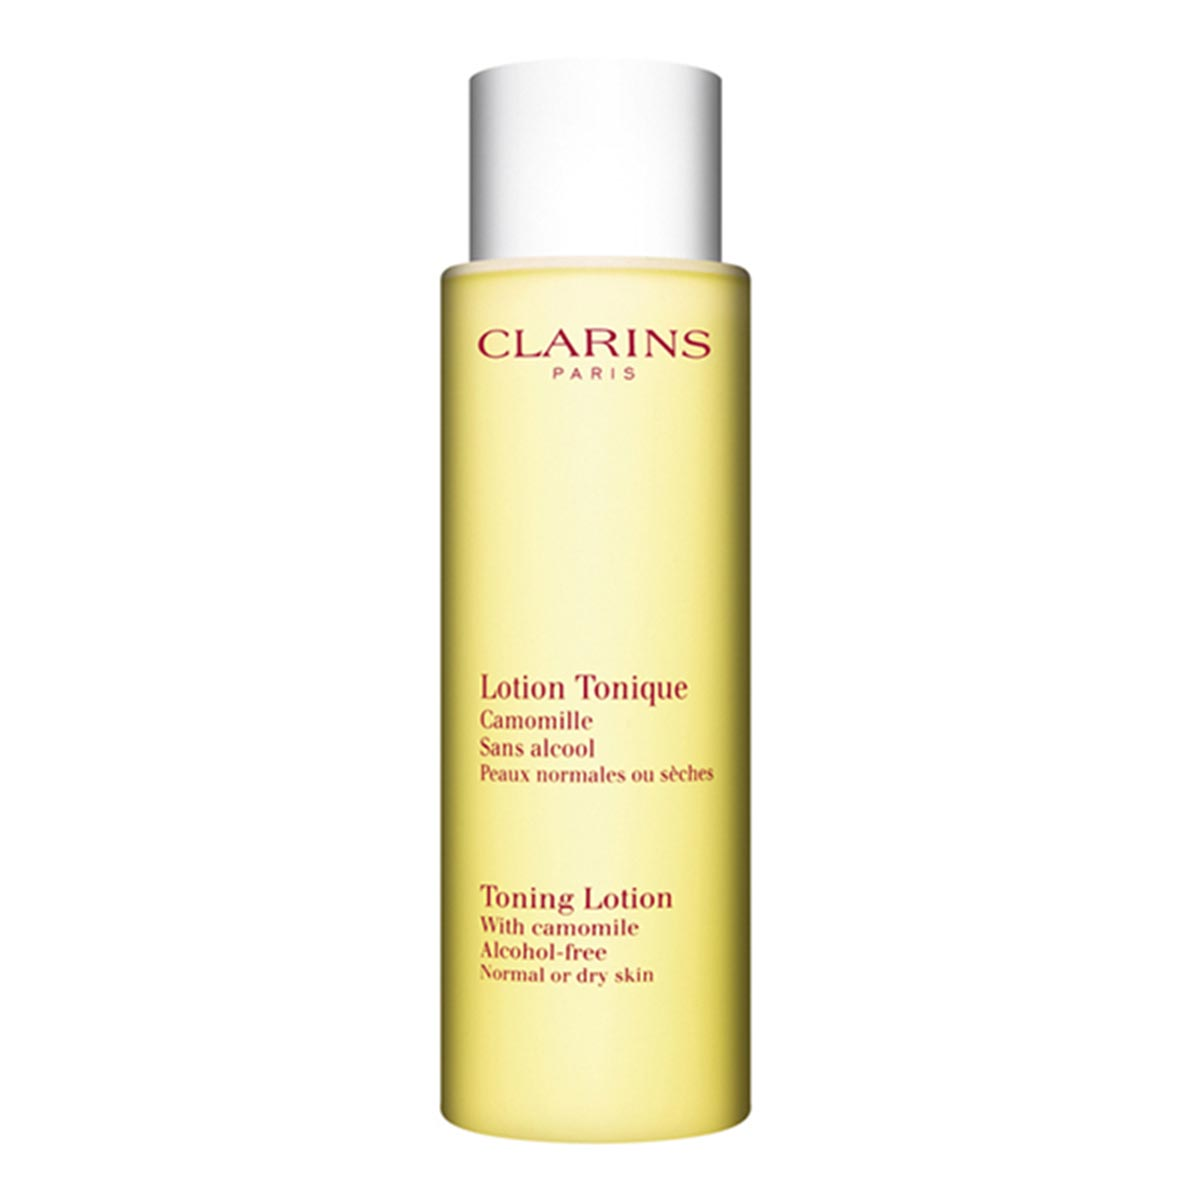 Clarins toning lotion with aloe vera dry skins 200ml